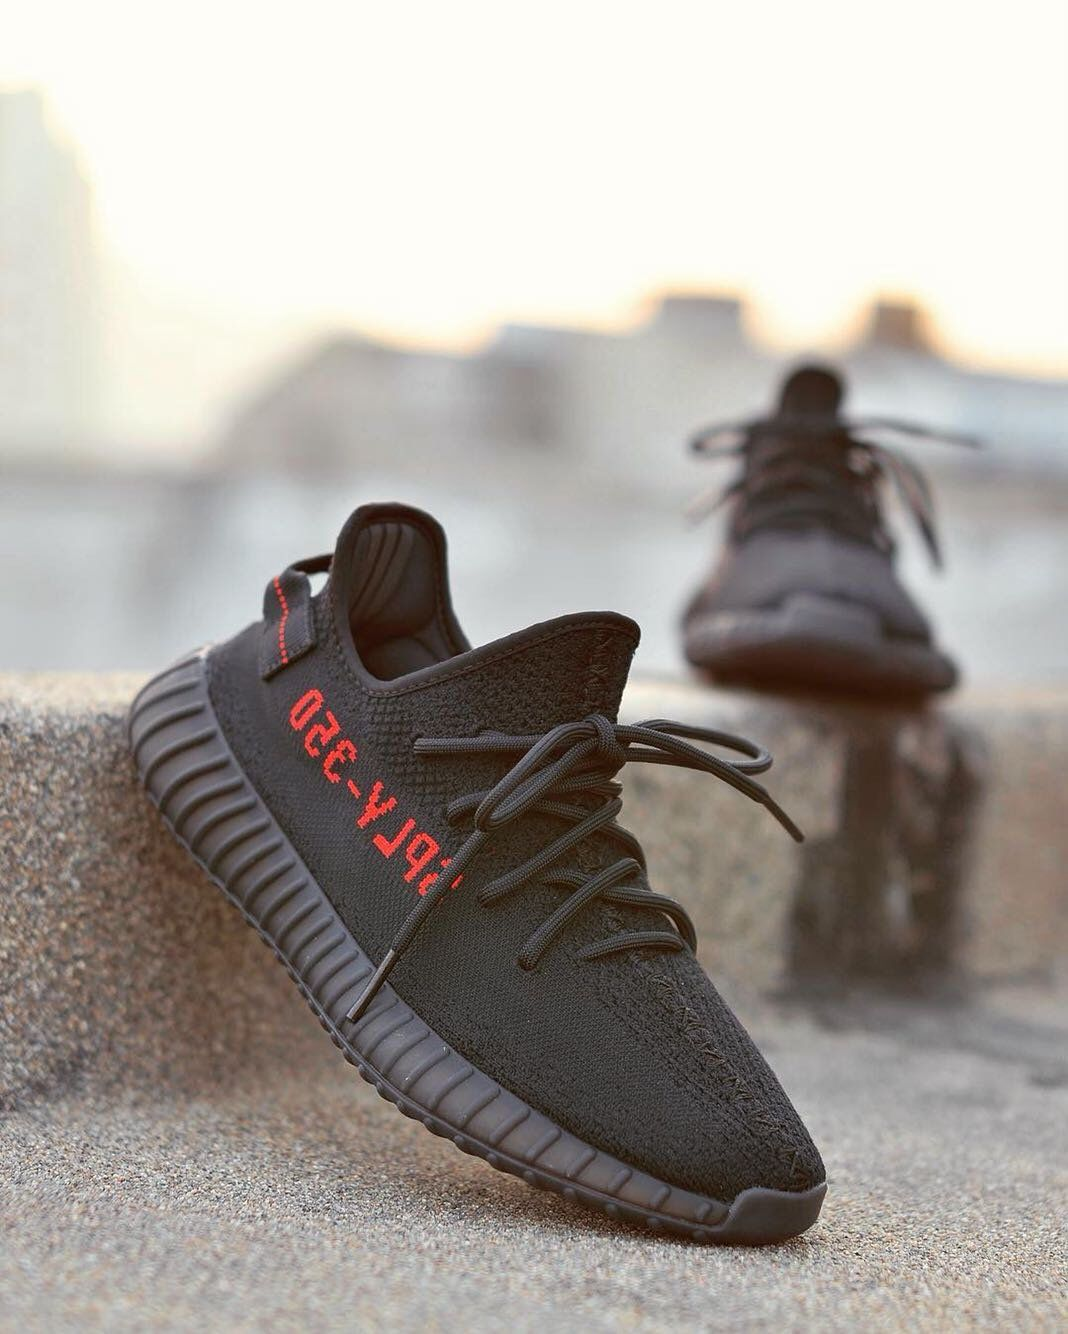 Adidas Yeezy 350 V2 new pirate black Red colour way coming soon  9a2e6e649